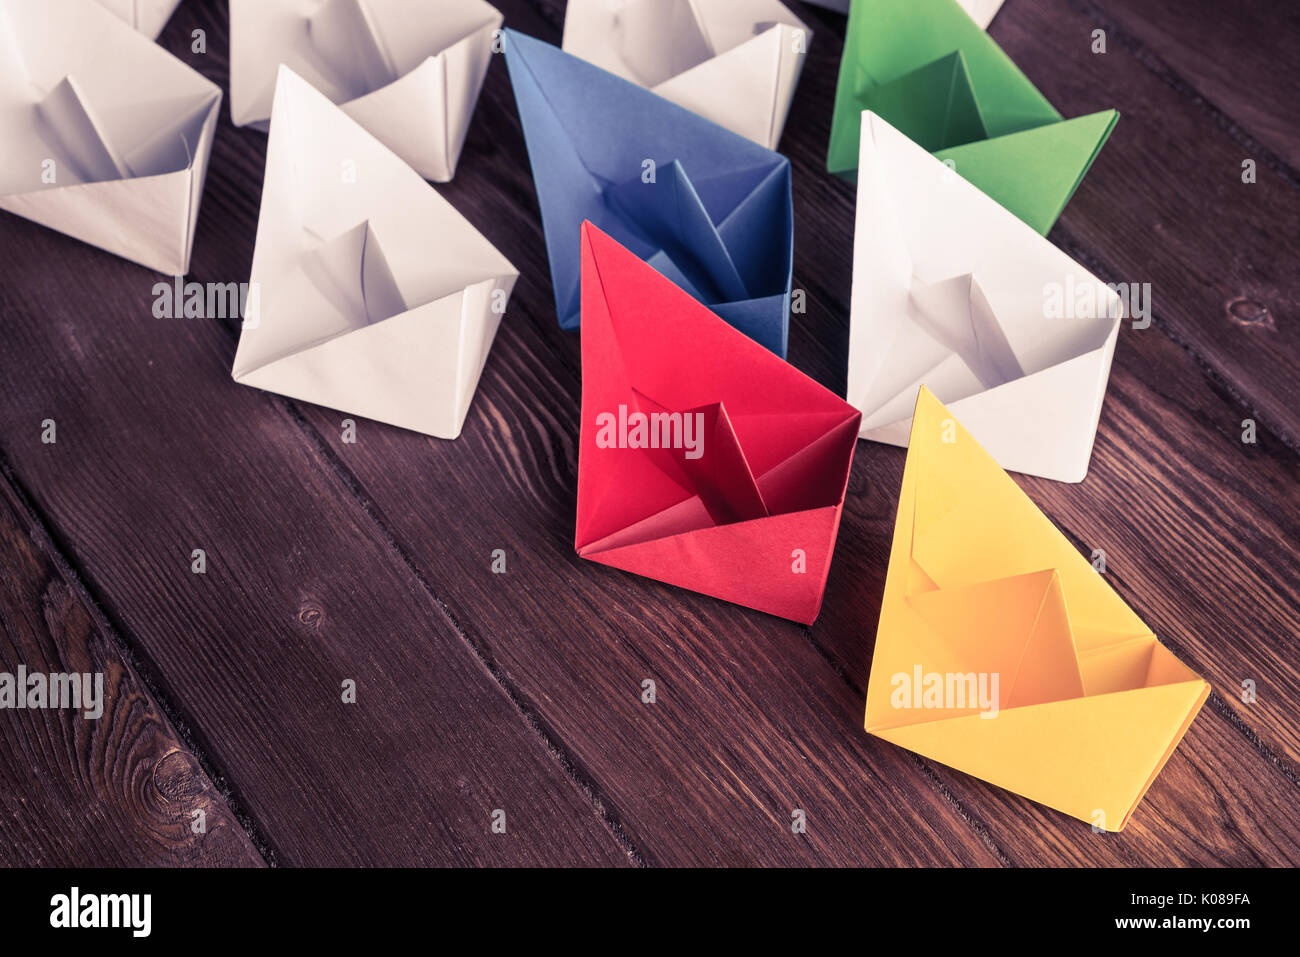 Business leadership concept with white and color paper boats on  - Stock Image